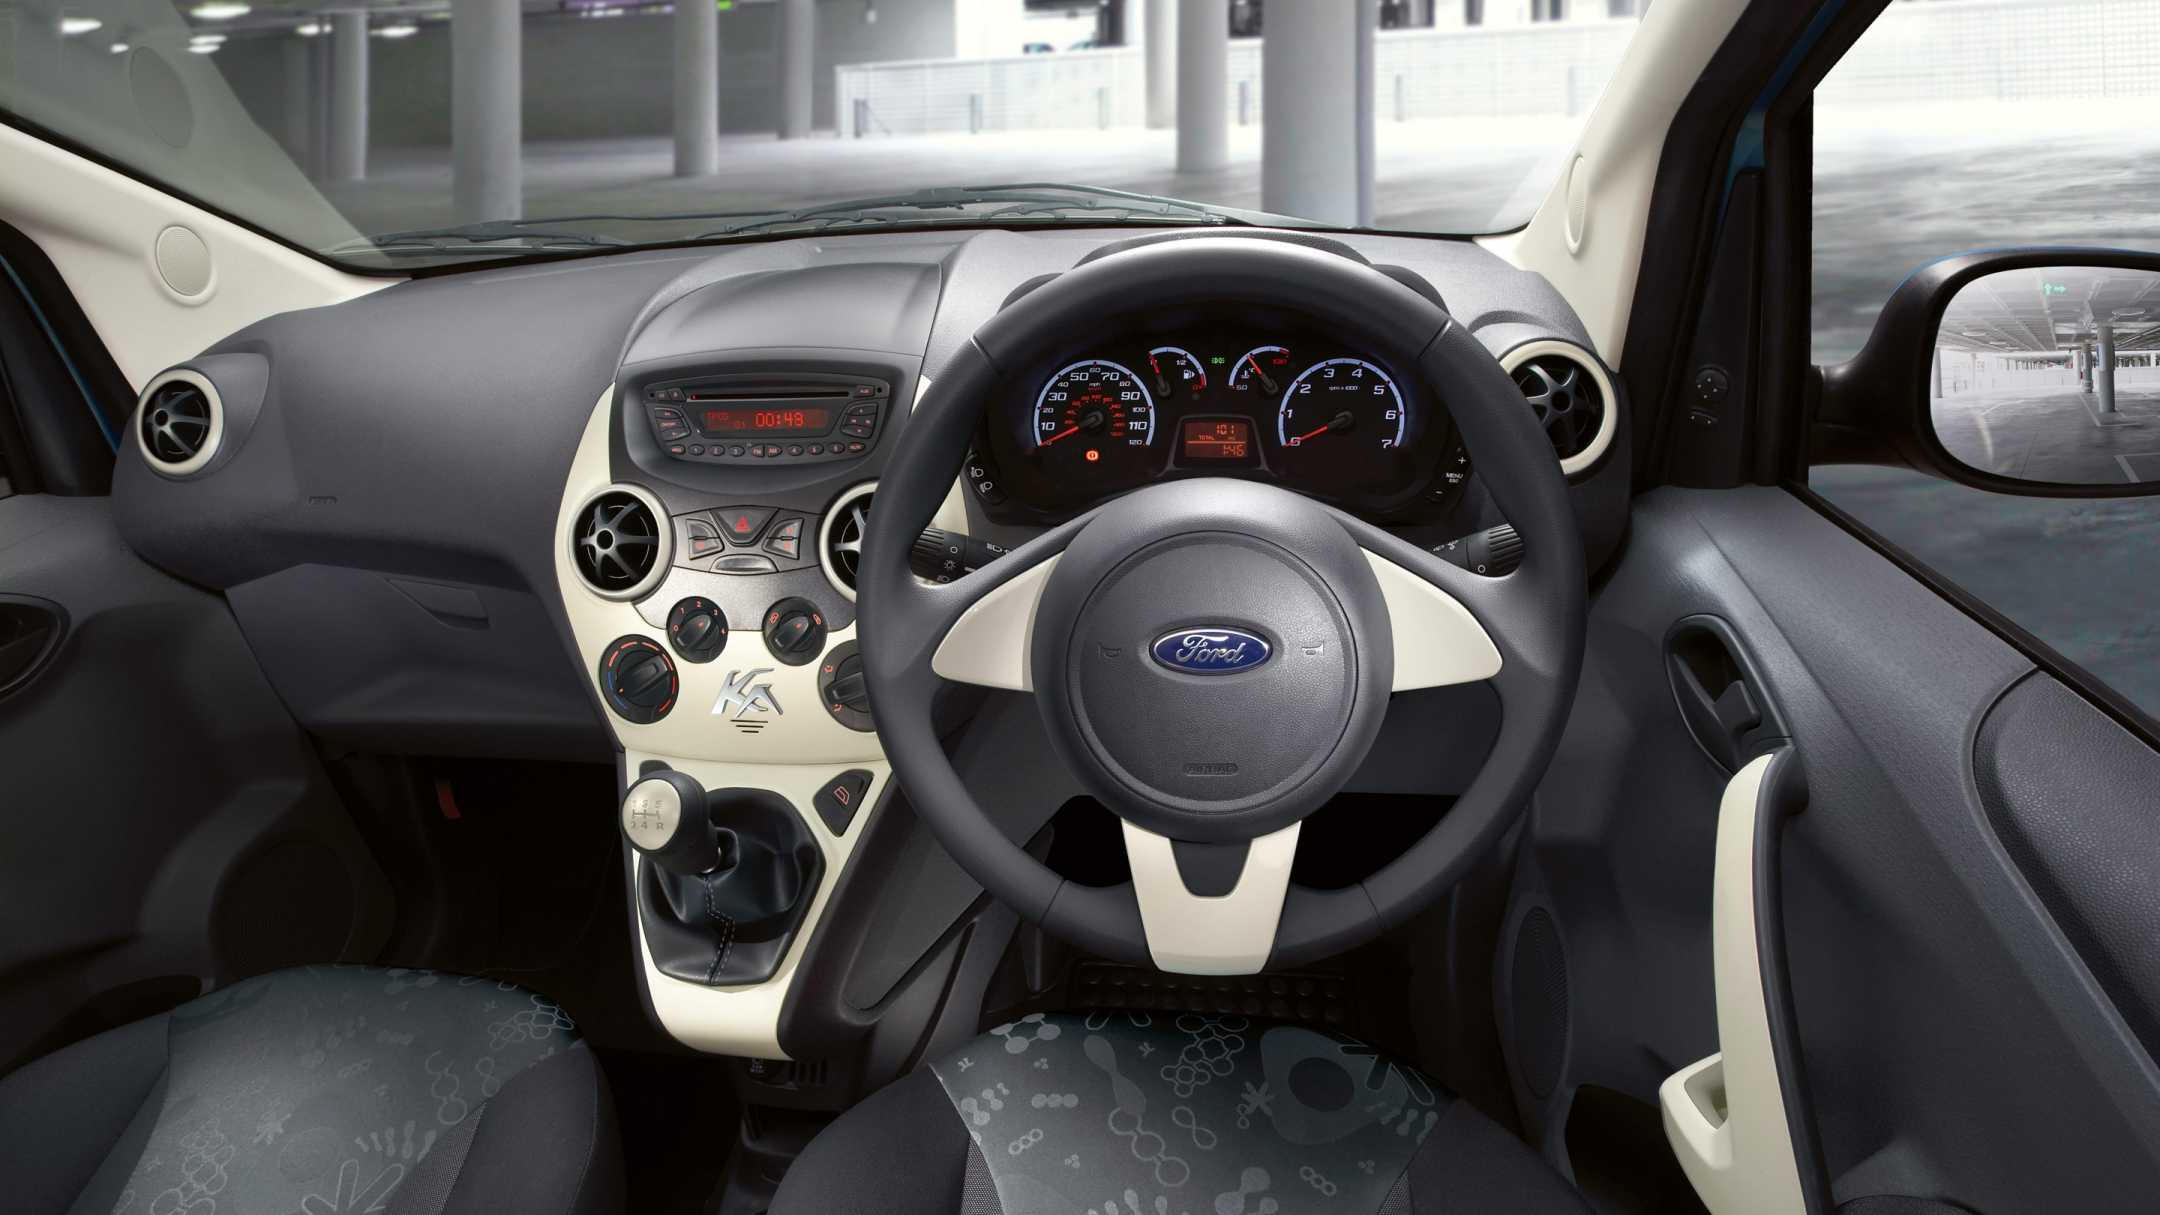 ford ka review 2011 unique small car ebest cars. Black Bedroom Furniture Sets. Home Design Ideas